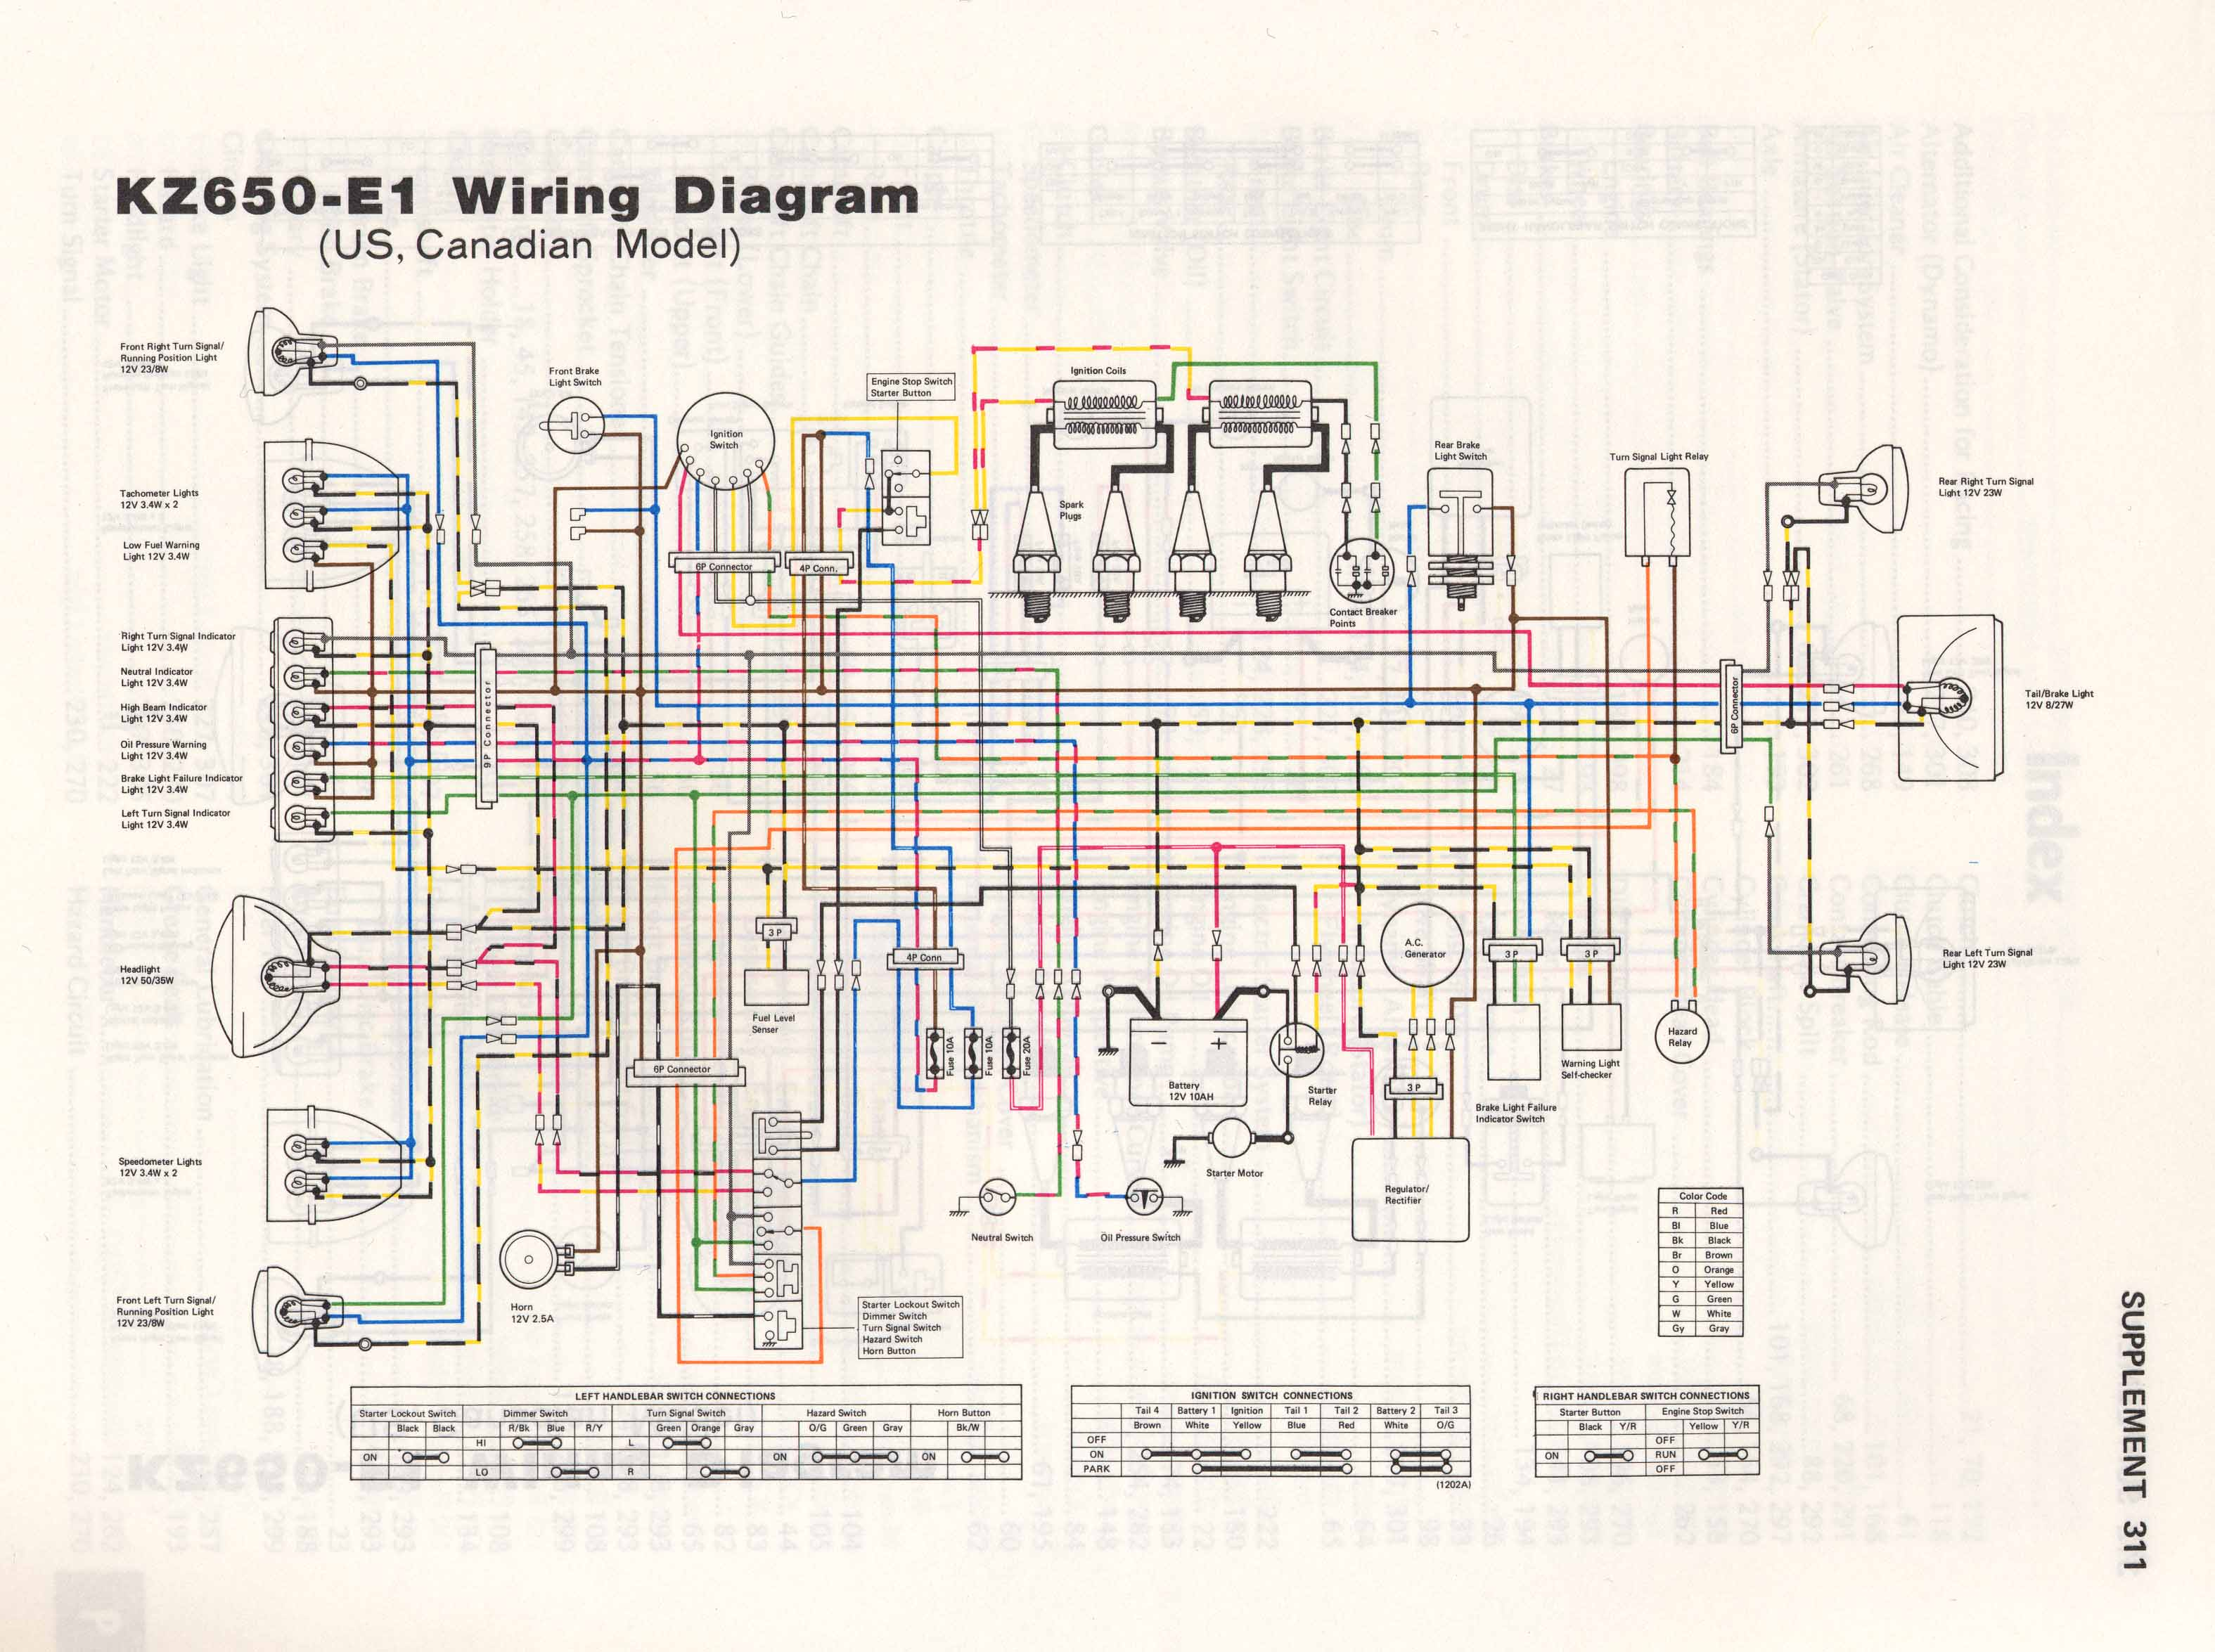 KZ650 E1 kz650 info wiring diagrams kz1000 wiring diagram at soozxer.org